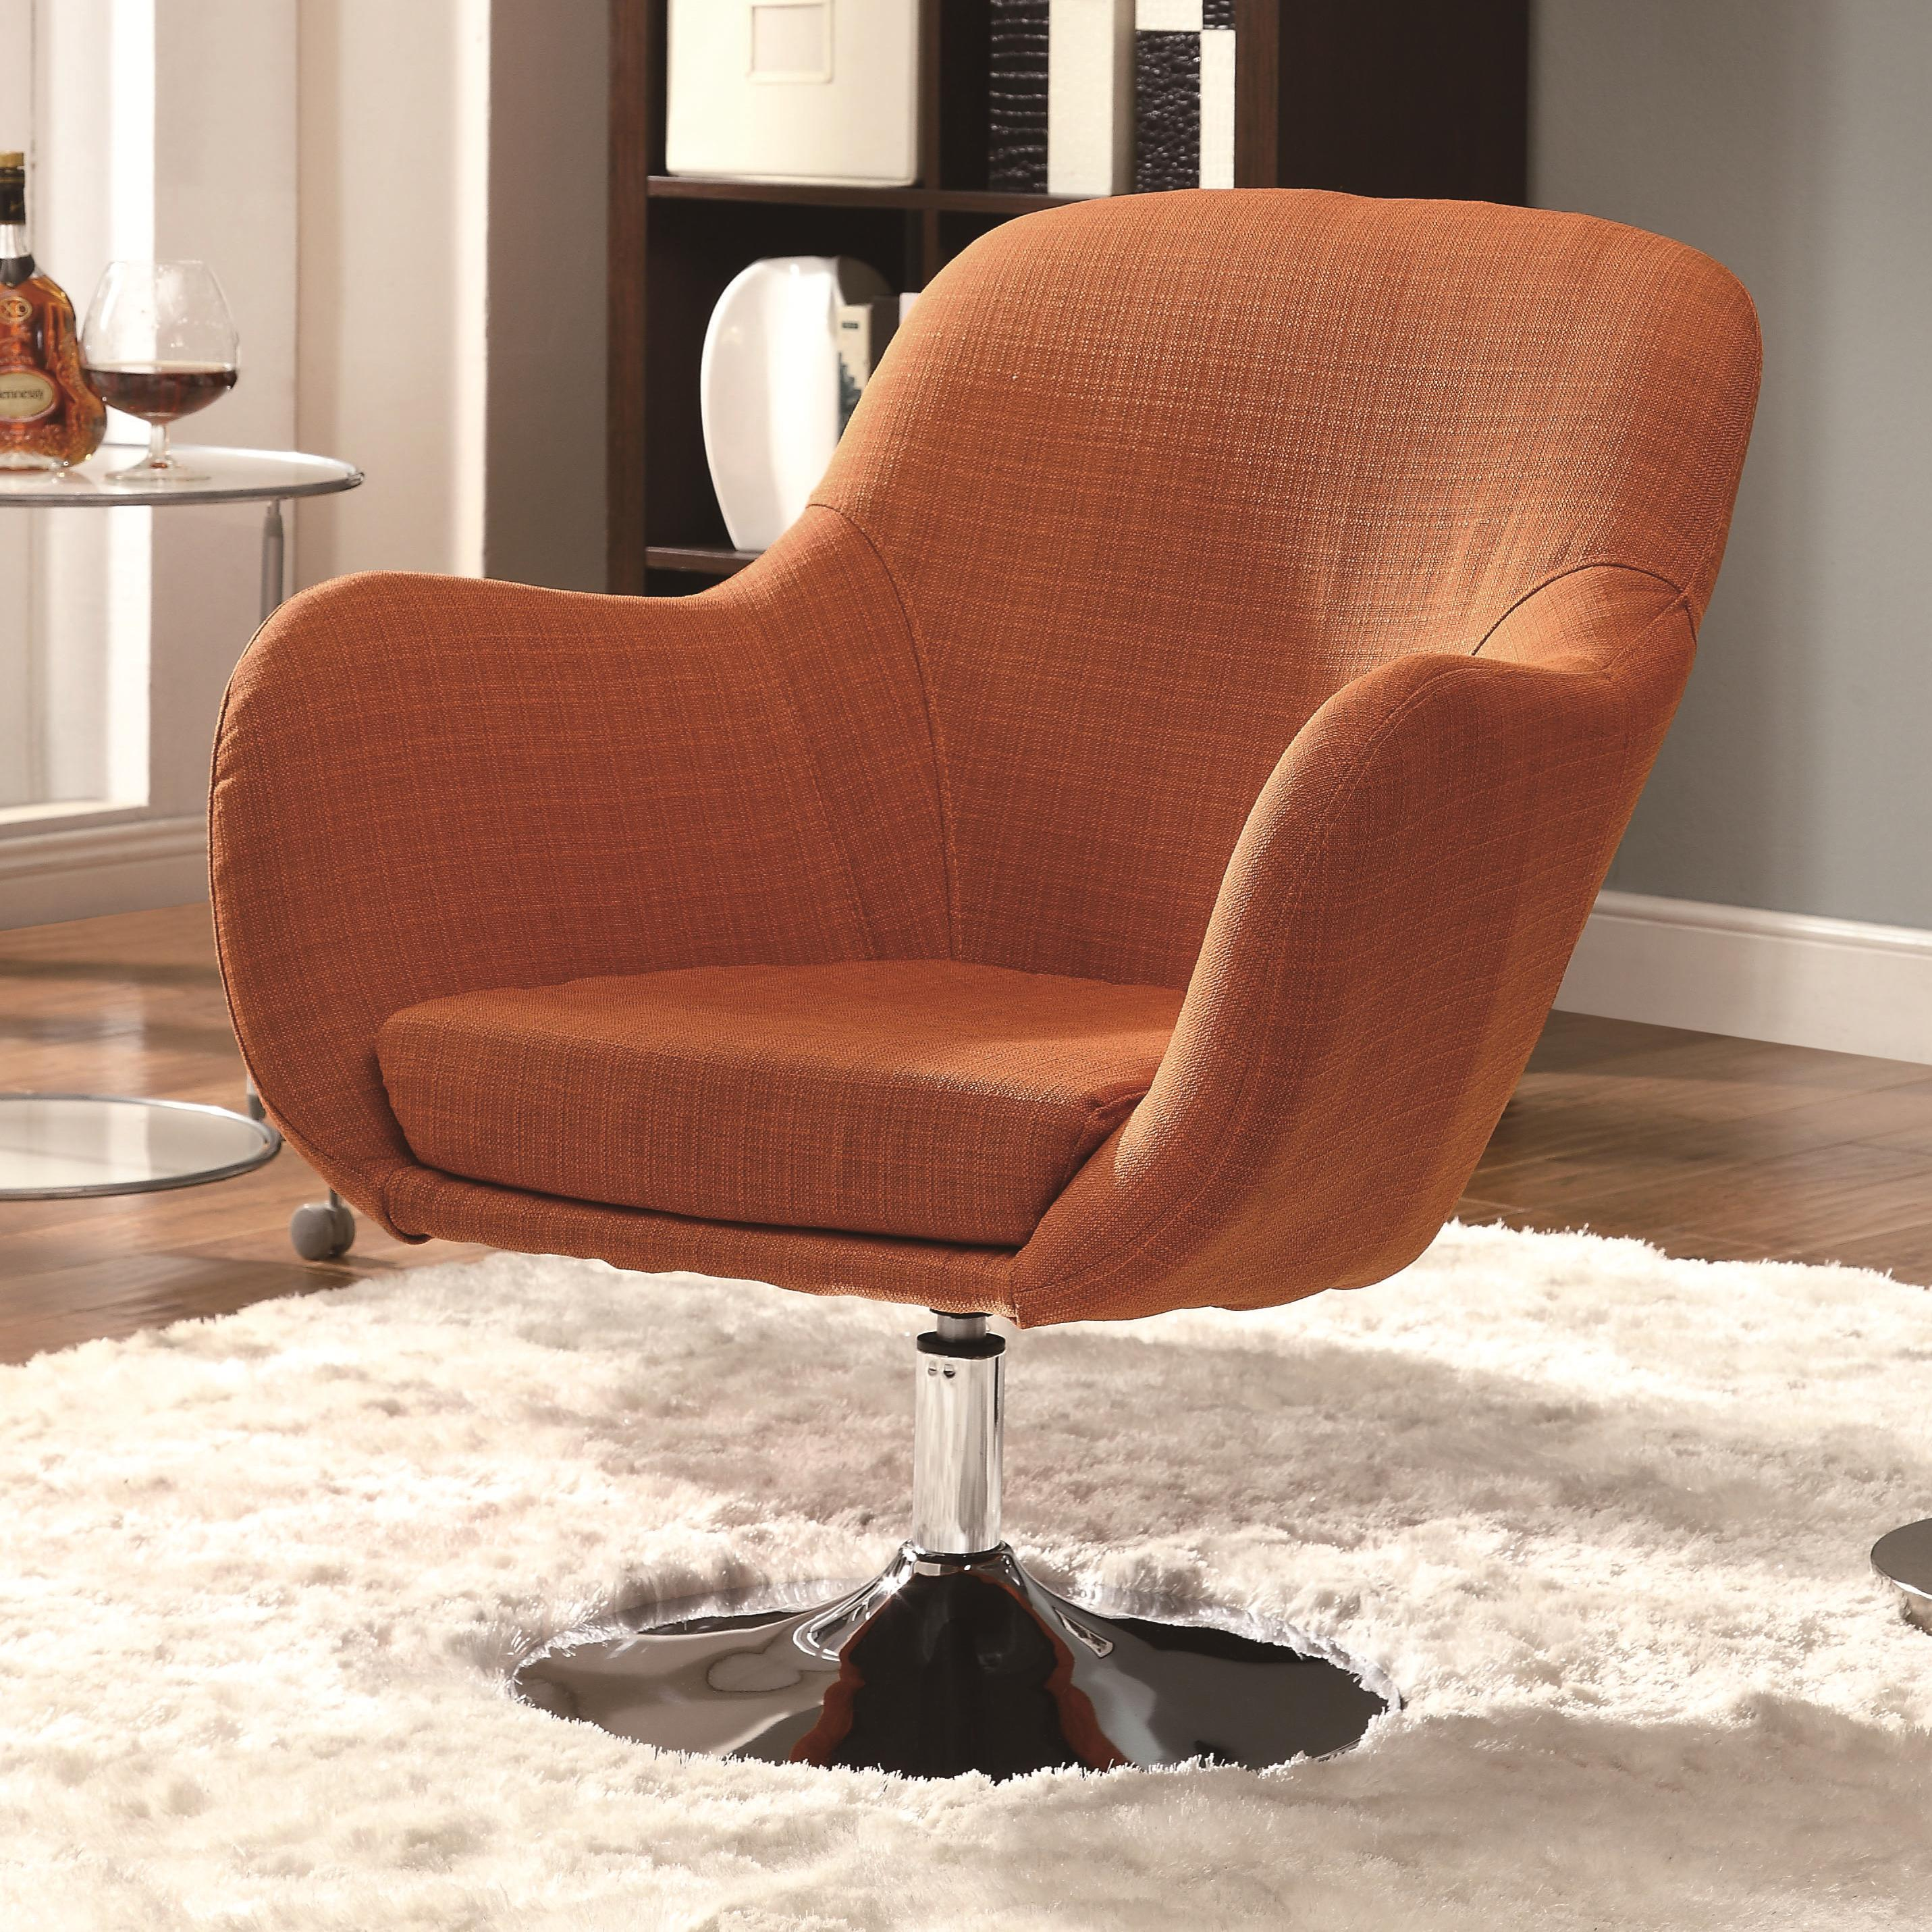 orange upholstered chair heavy duty lift chairs coaster accent seating 902148 retro swivel miller home